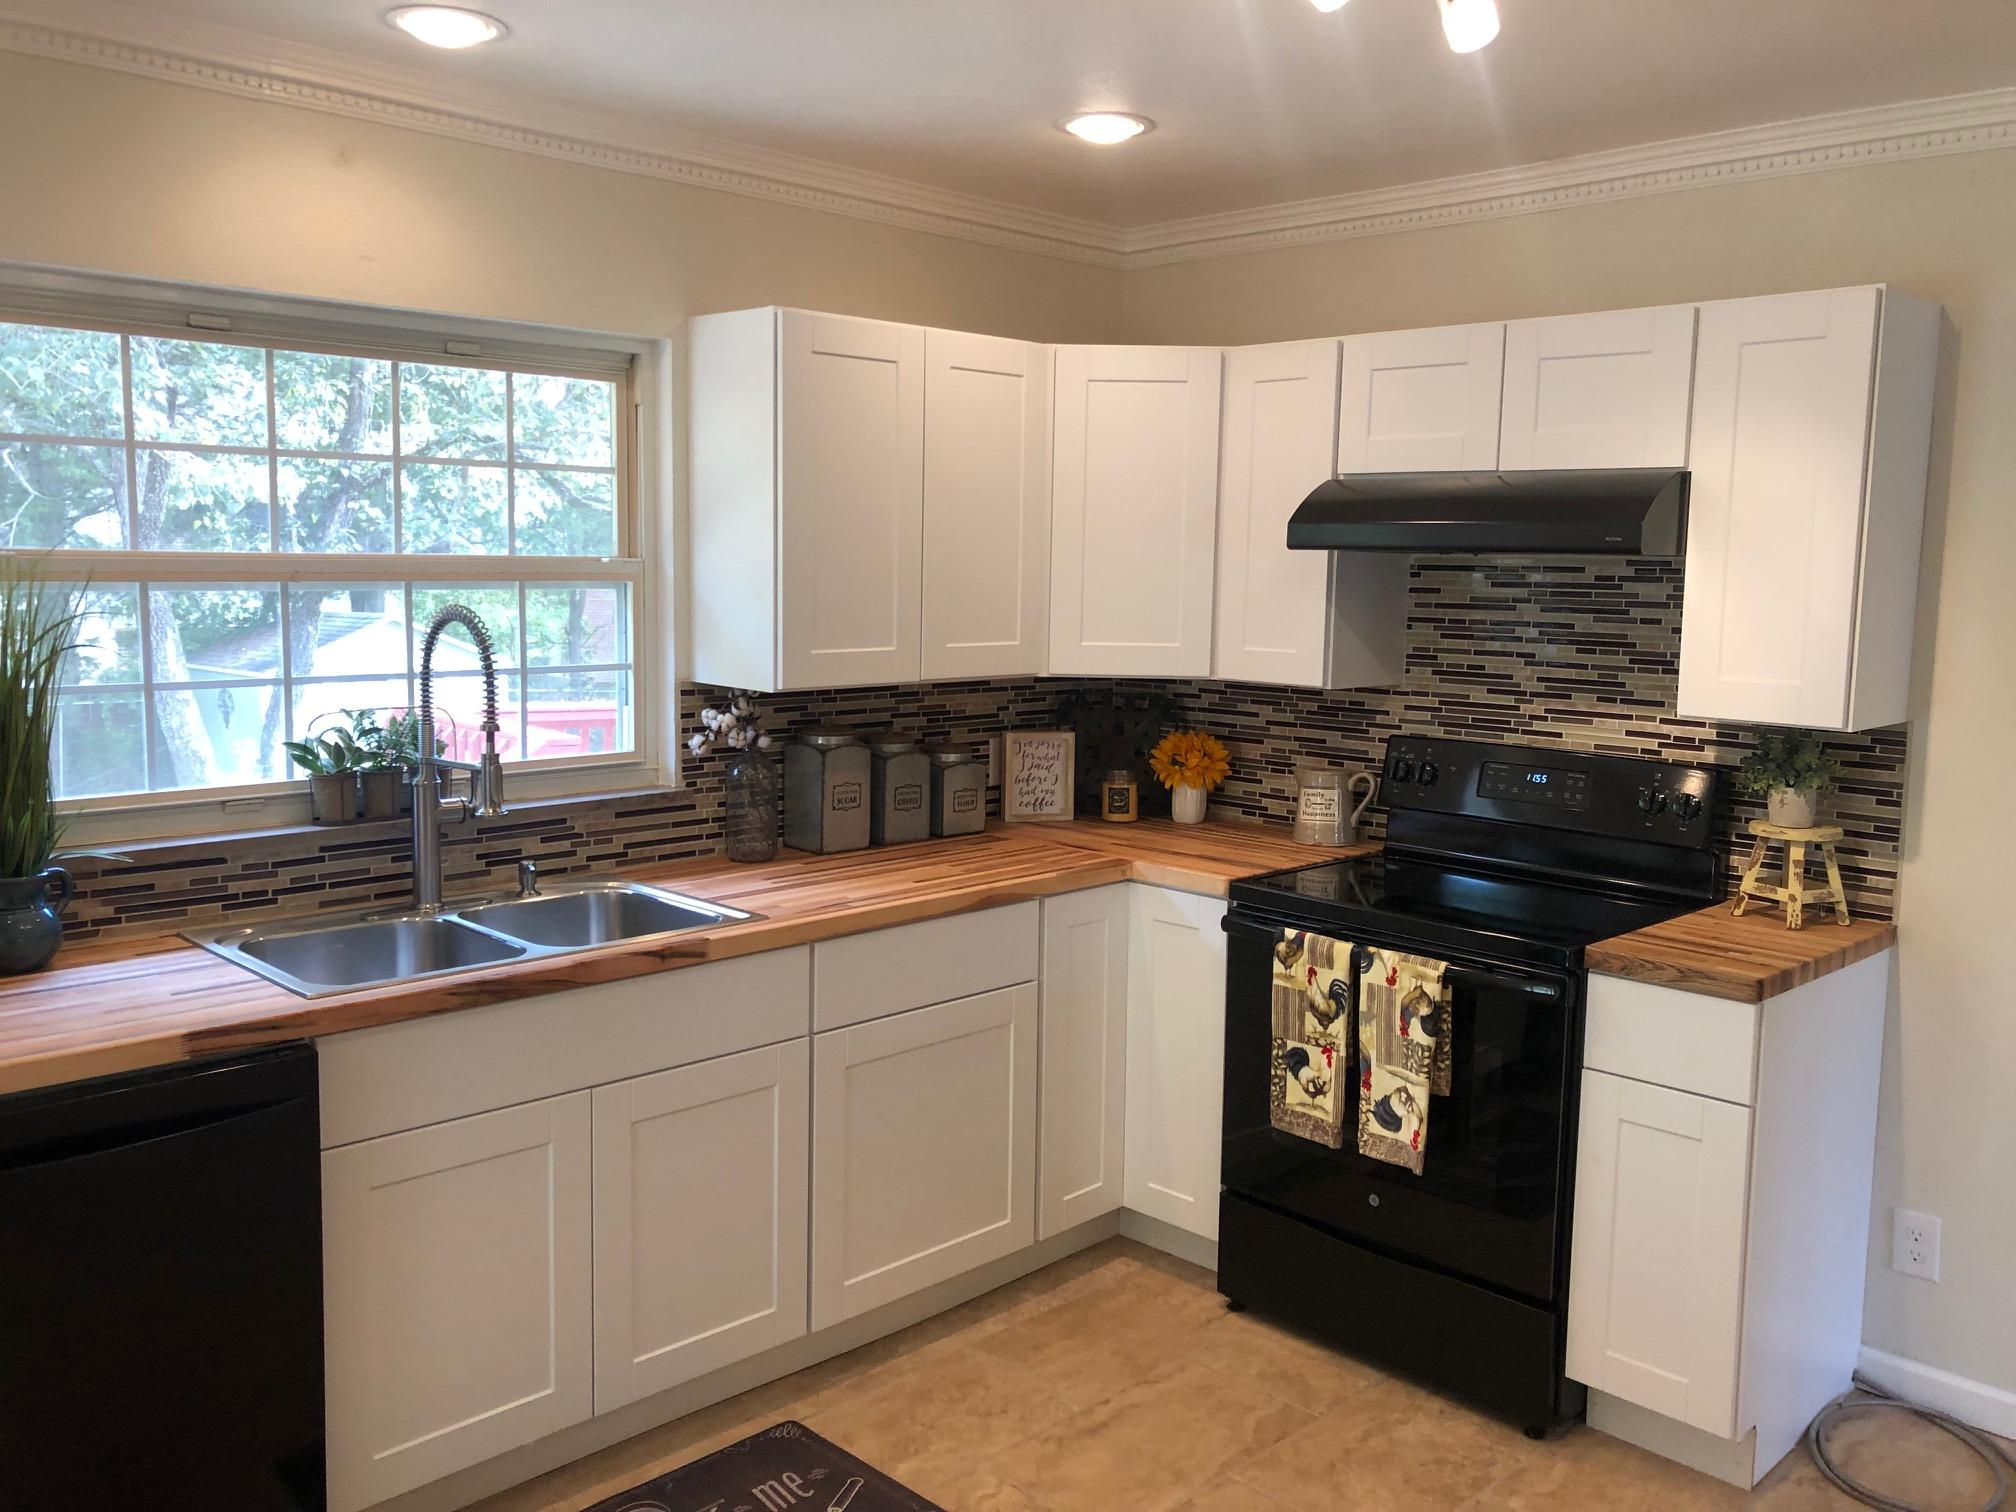 3116 Shelbourne Rd, Knoxville, Tennessee 37917, 2 Bedrooms Bedrooms, ,2 BathroomsBathrooms,Single Family,For Sale,Shelbourne,1095990